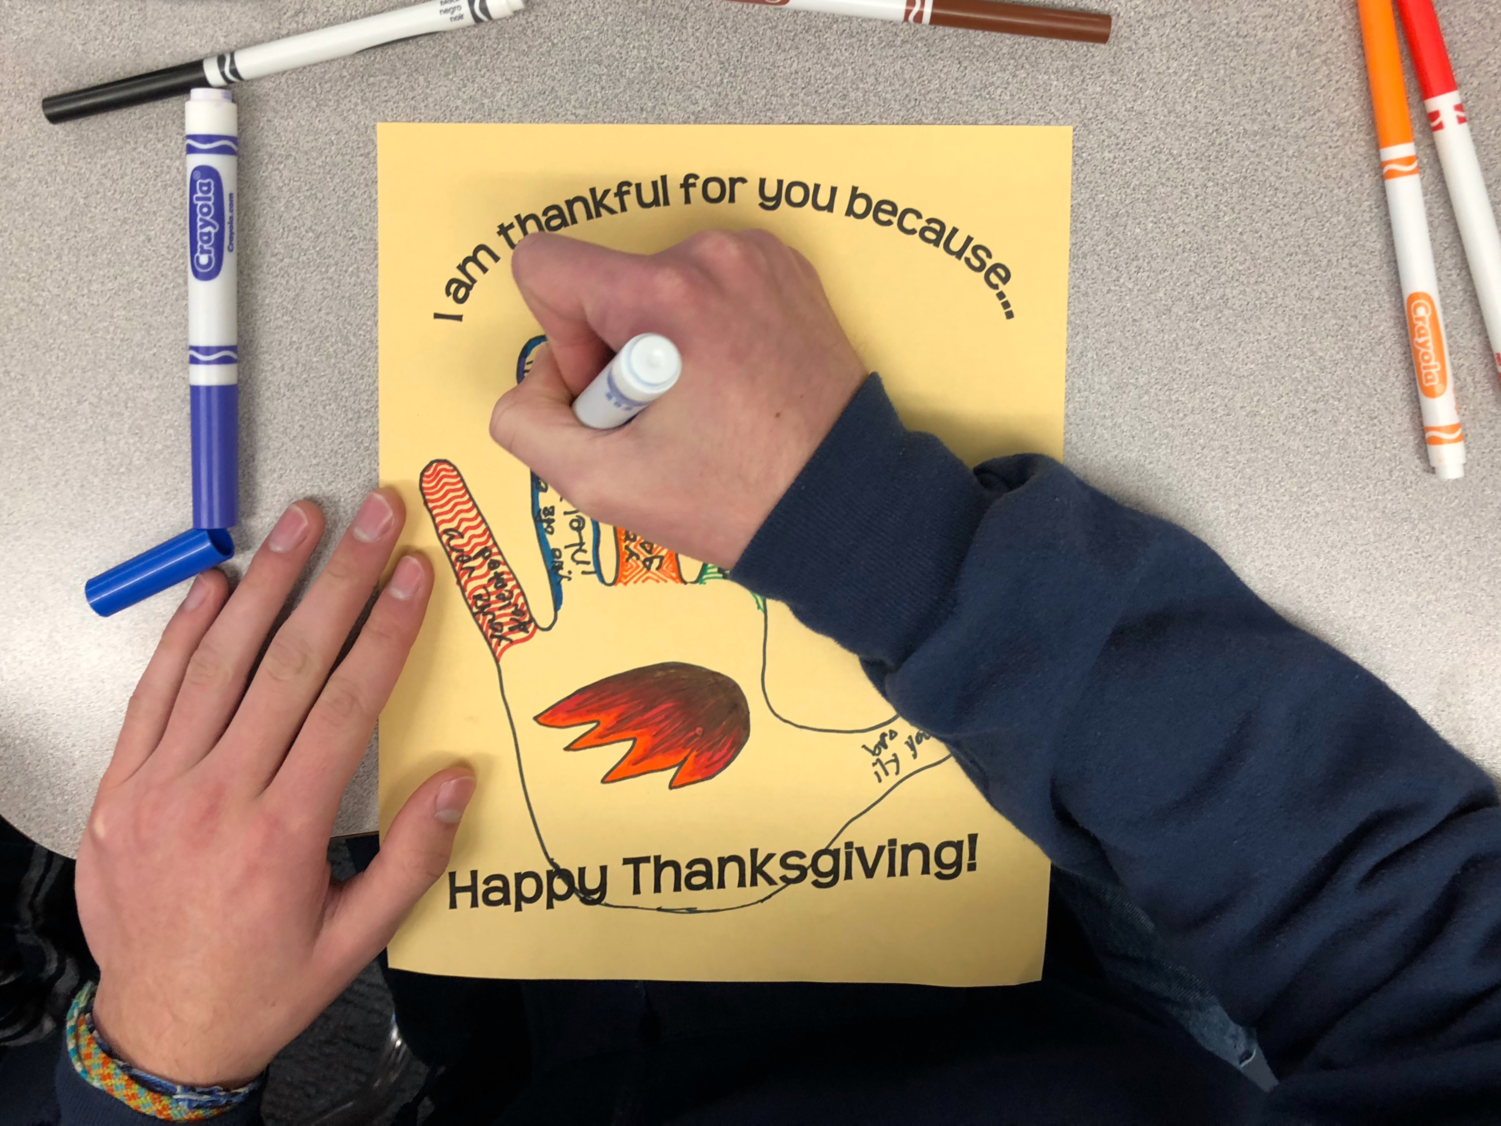 Carlmont students expressed appreciation for one another through ASB's candy corn–filled pumpkins and creating hand turkeys in class, as pictured.